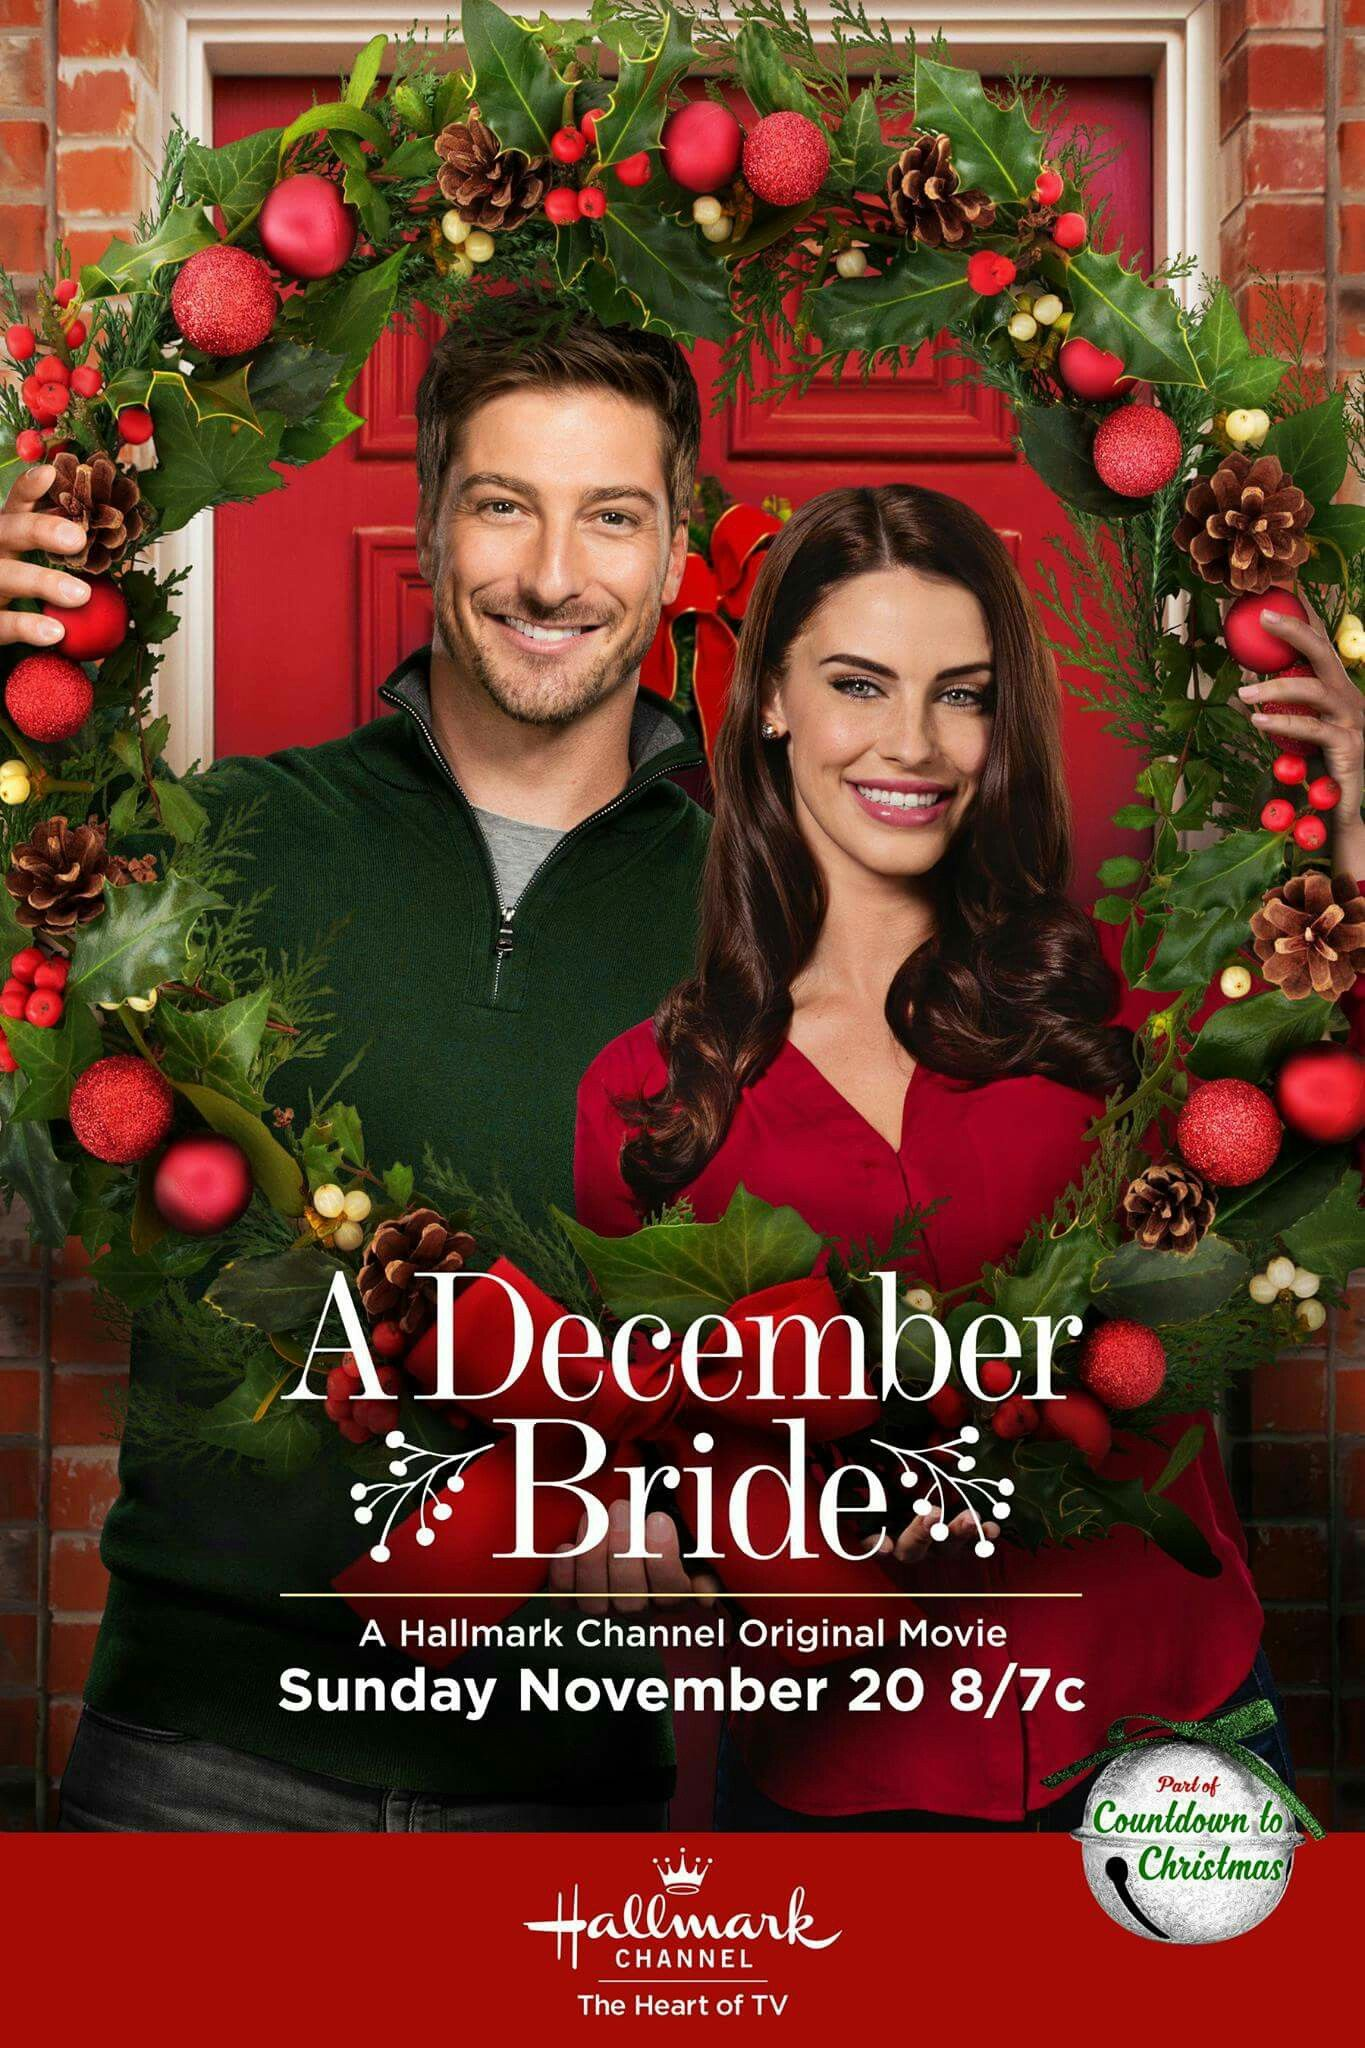 Pin by Lorie Ortiz on Great Hallmark Movies in 2018 | Pinterest ...